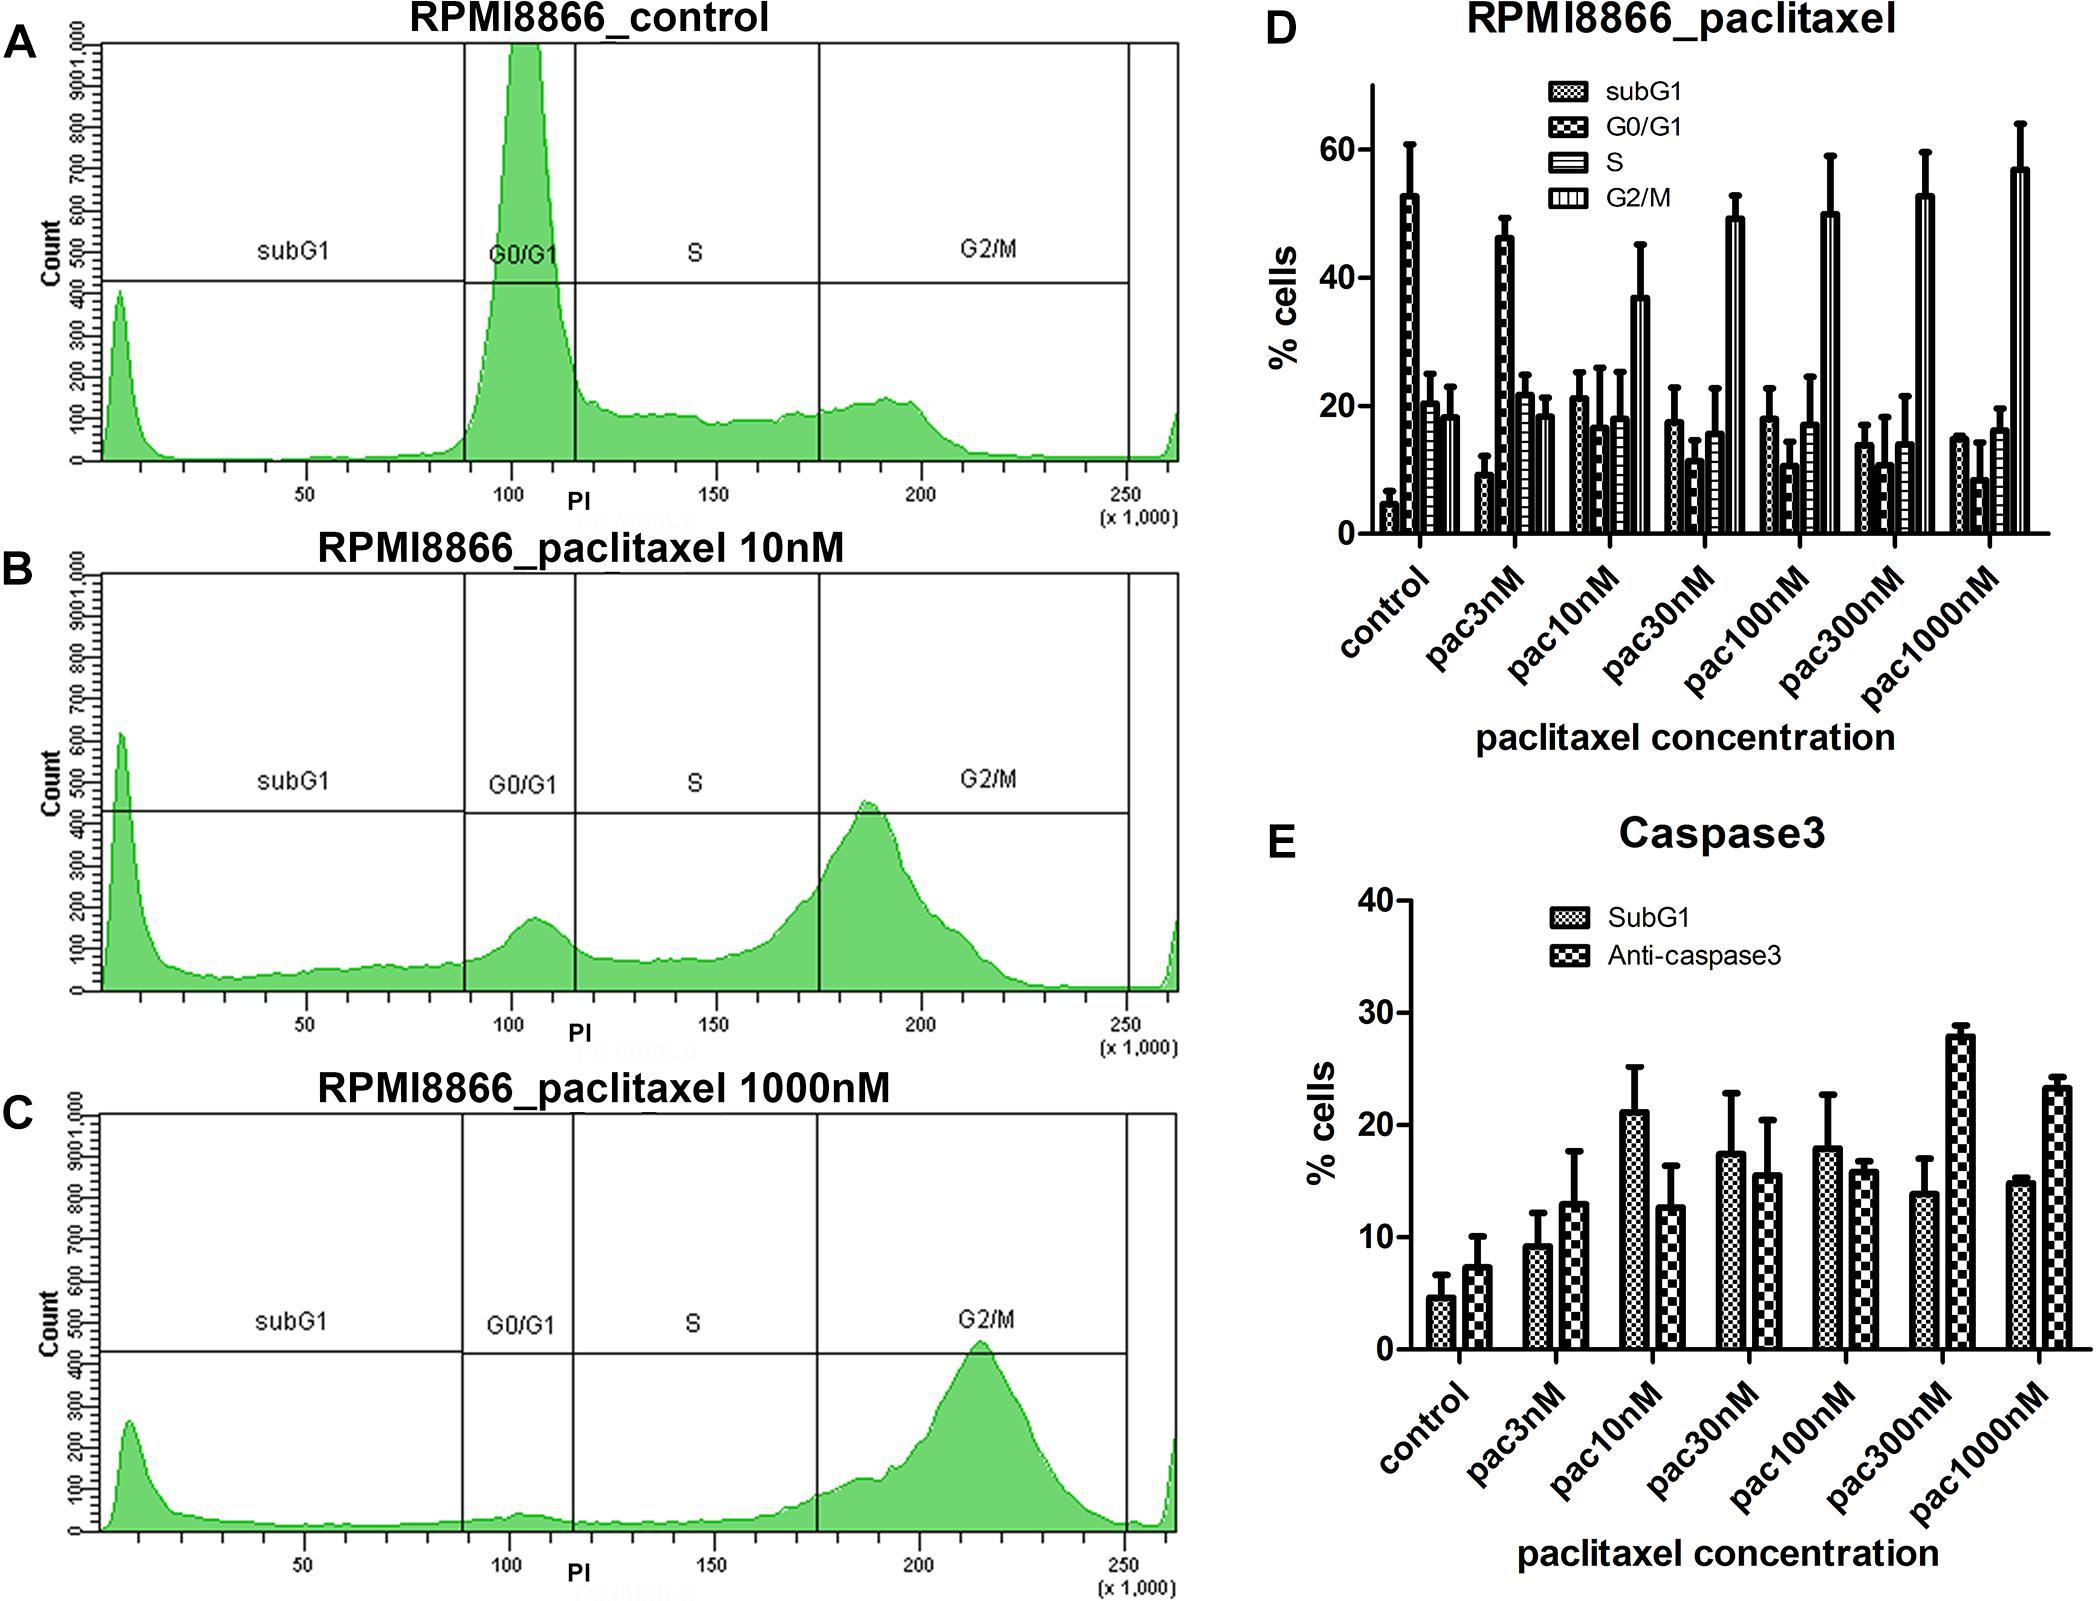 Frontiers | Non-linear Dose Response of Lymphocyte Cell Lines to